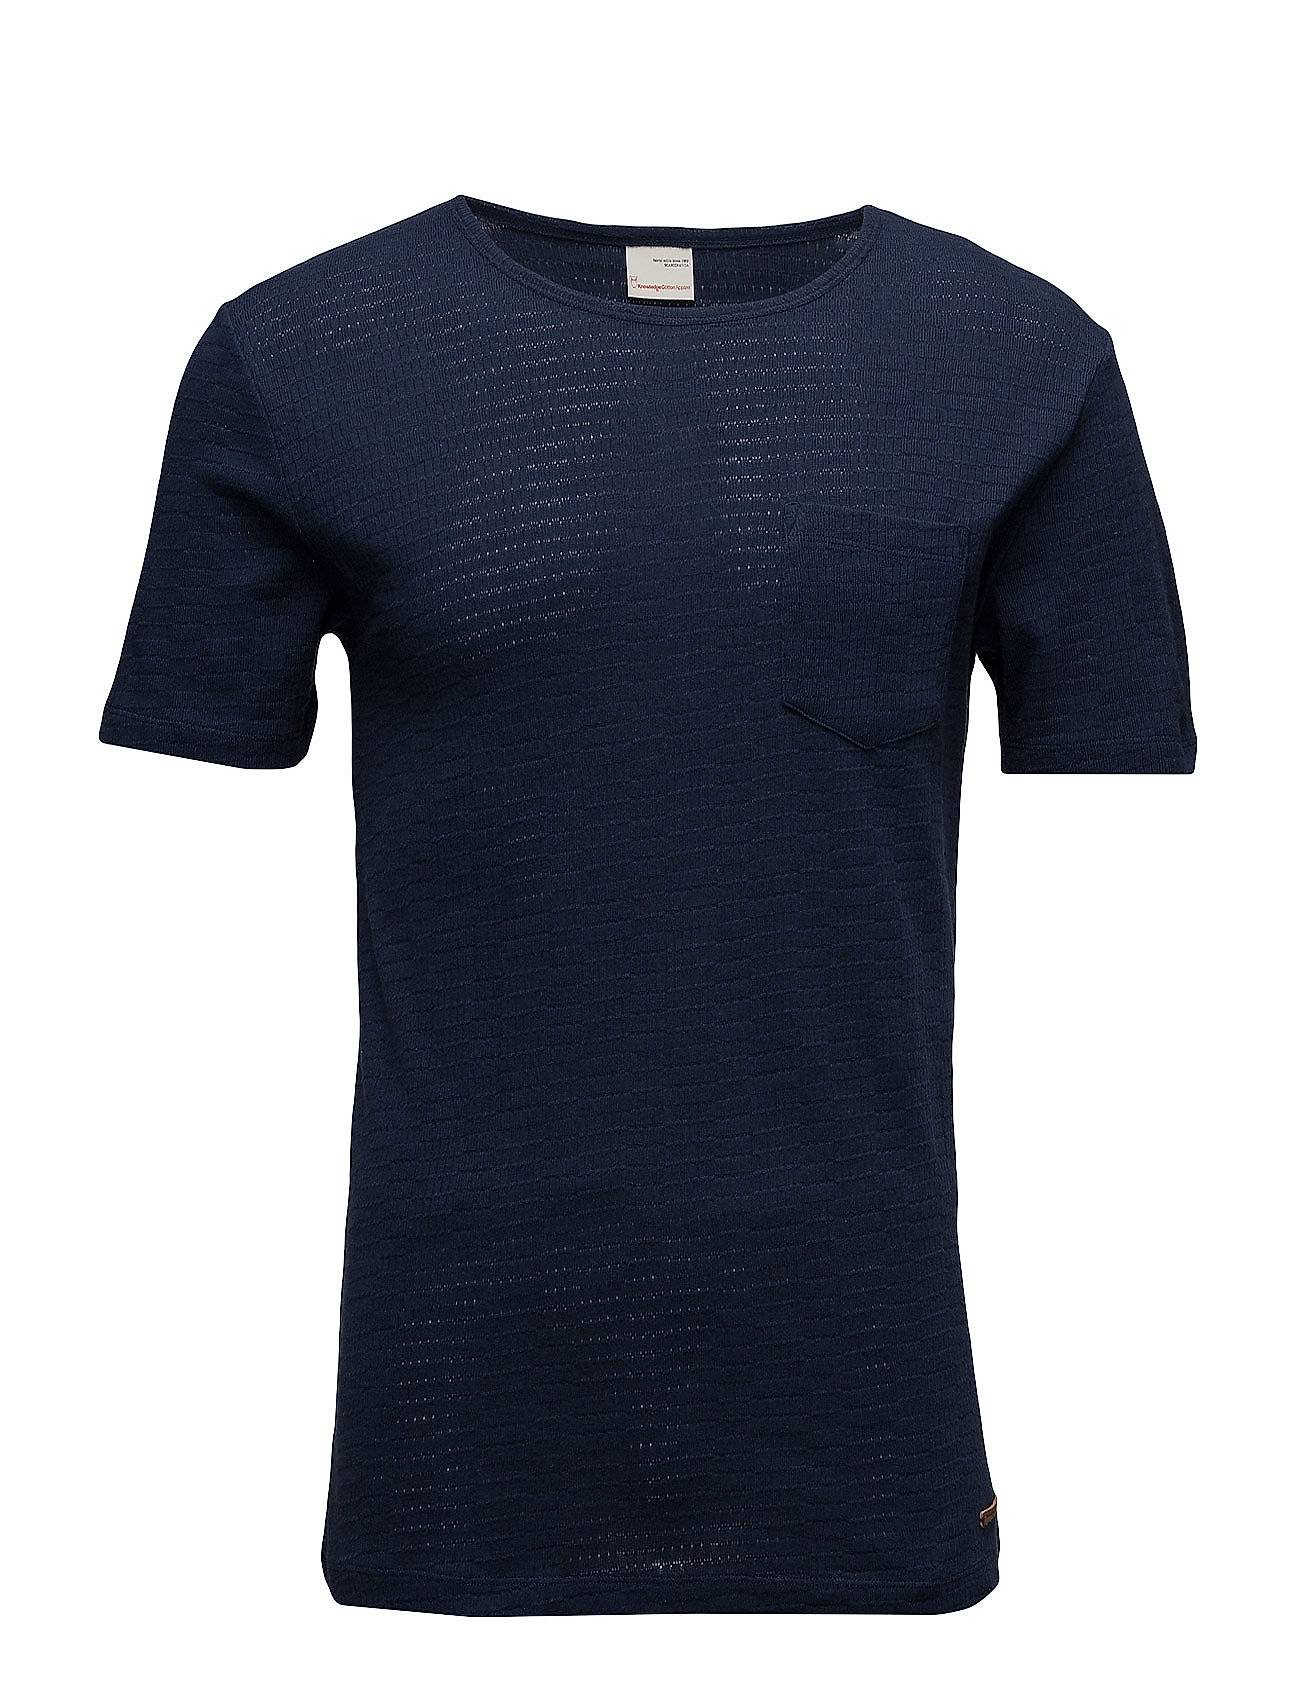 Knowledge Cotton Apparel Tee Rib Structure